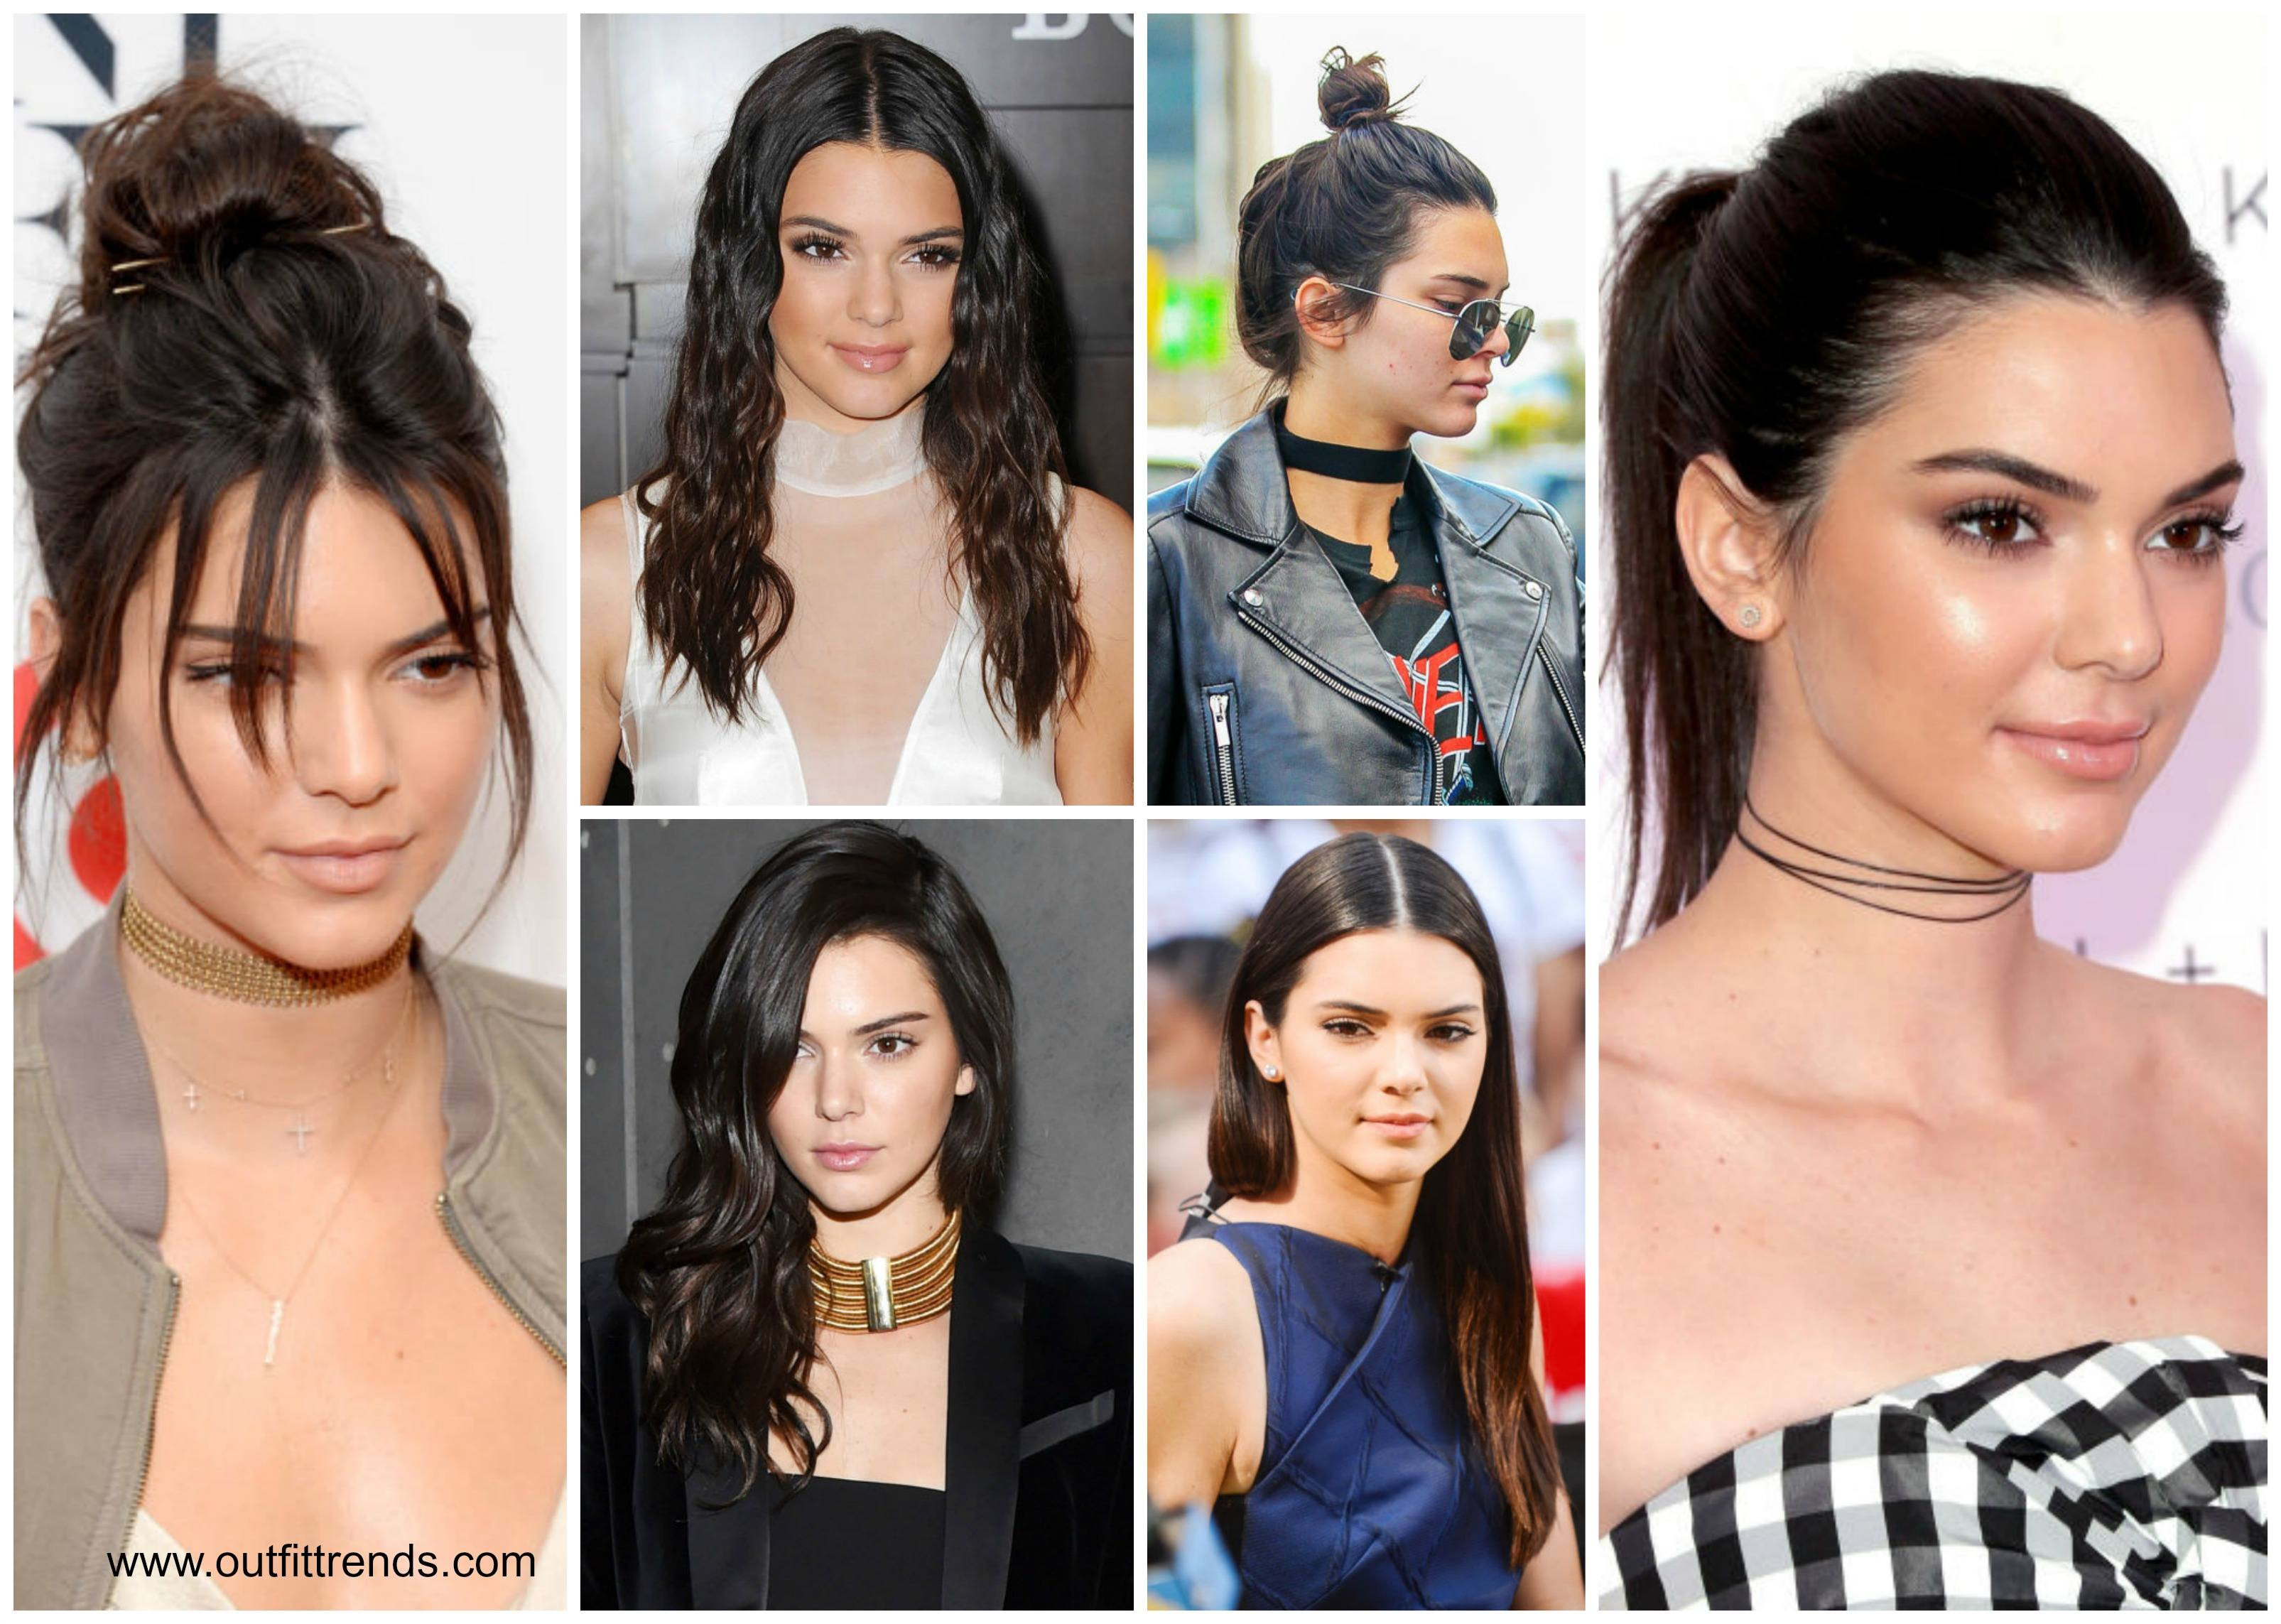 30 Most Stylish Kendall Jenner Outfits Of All Time